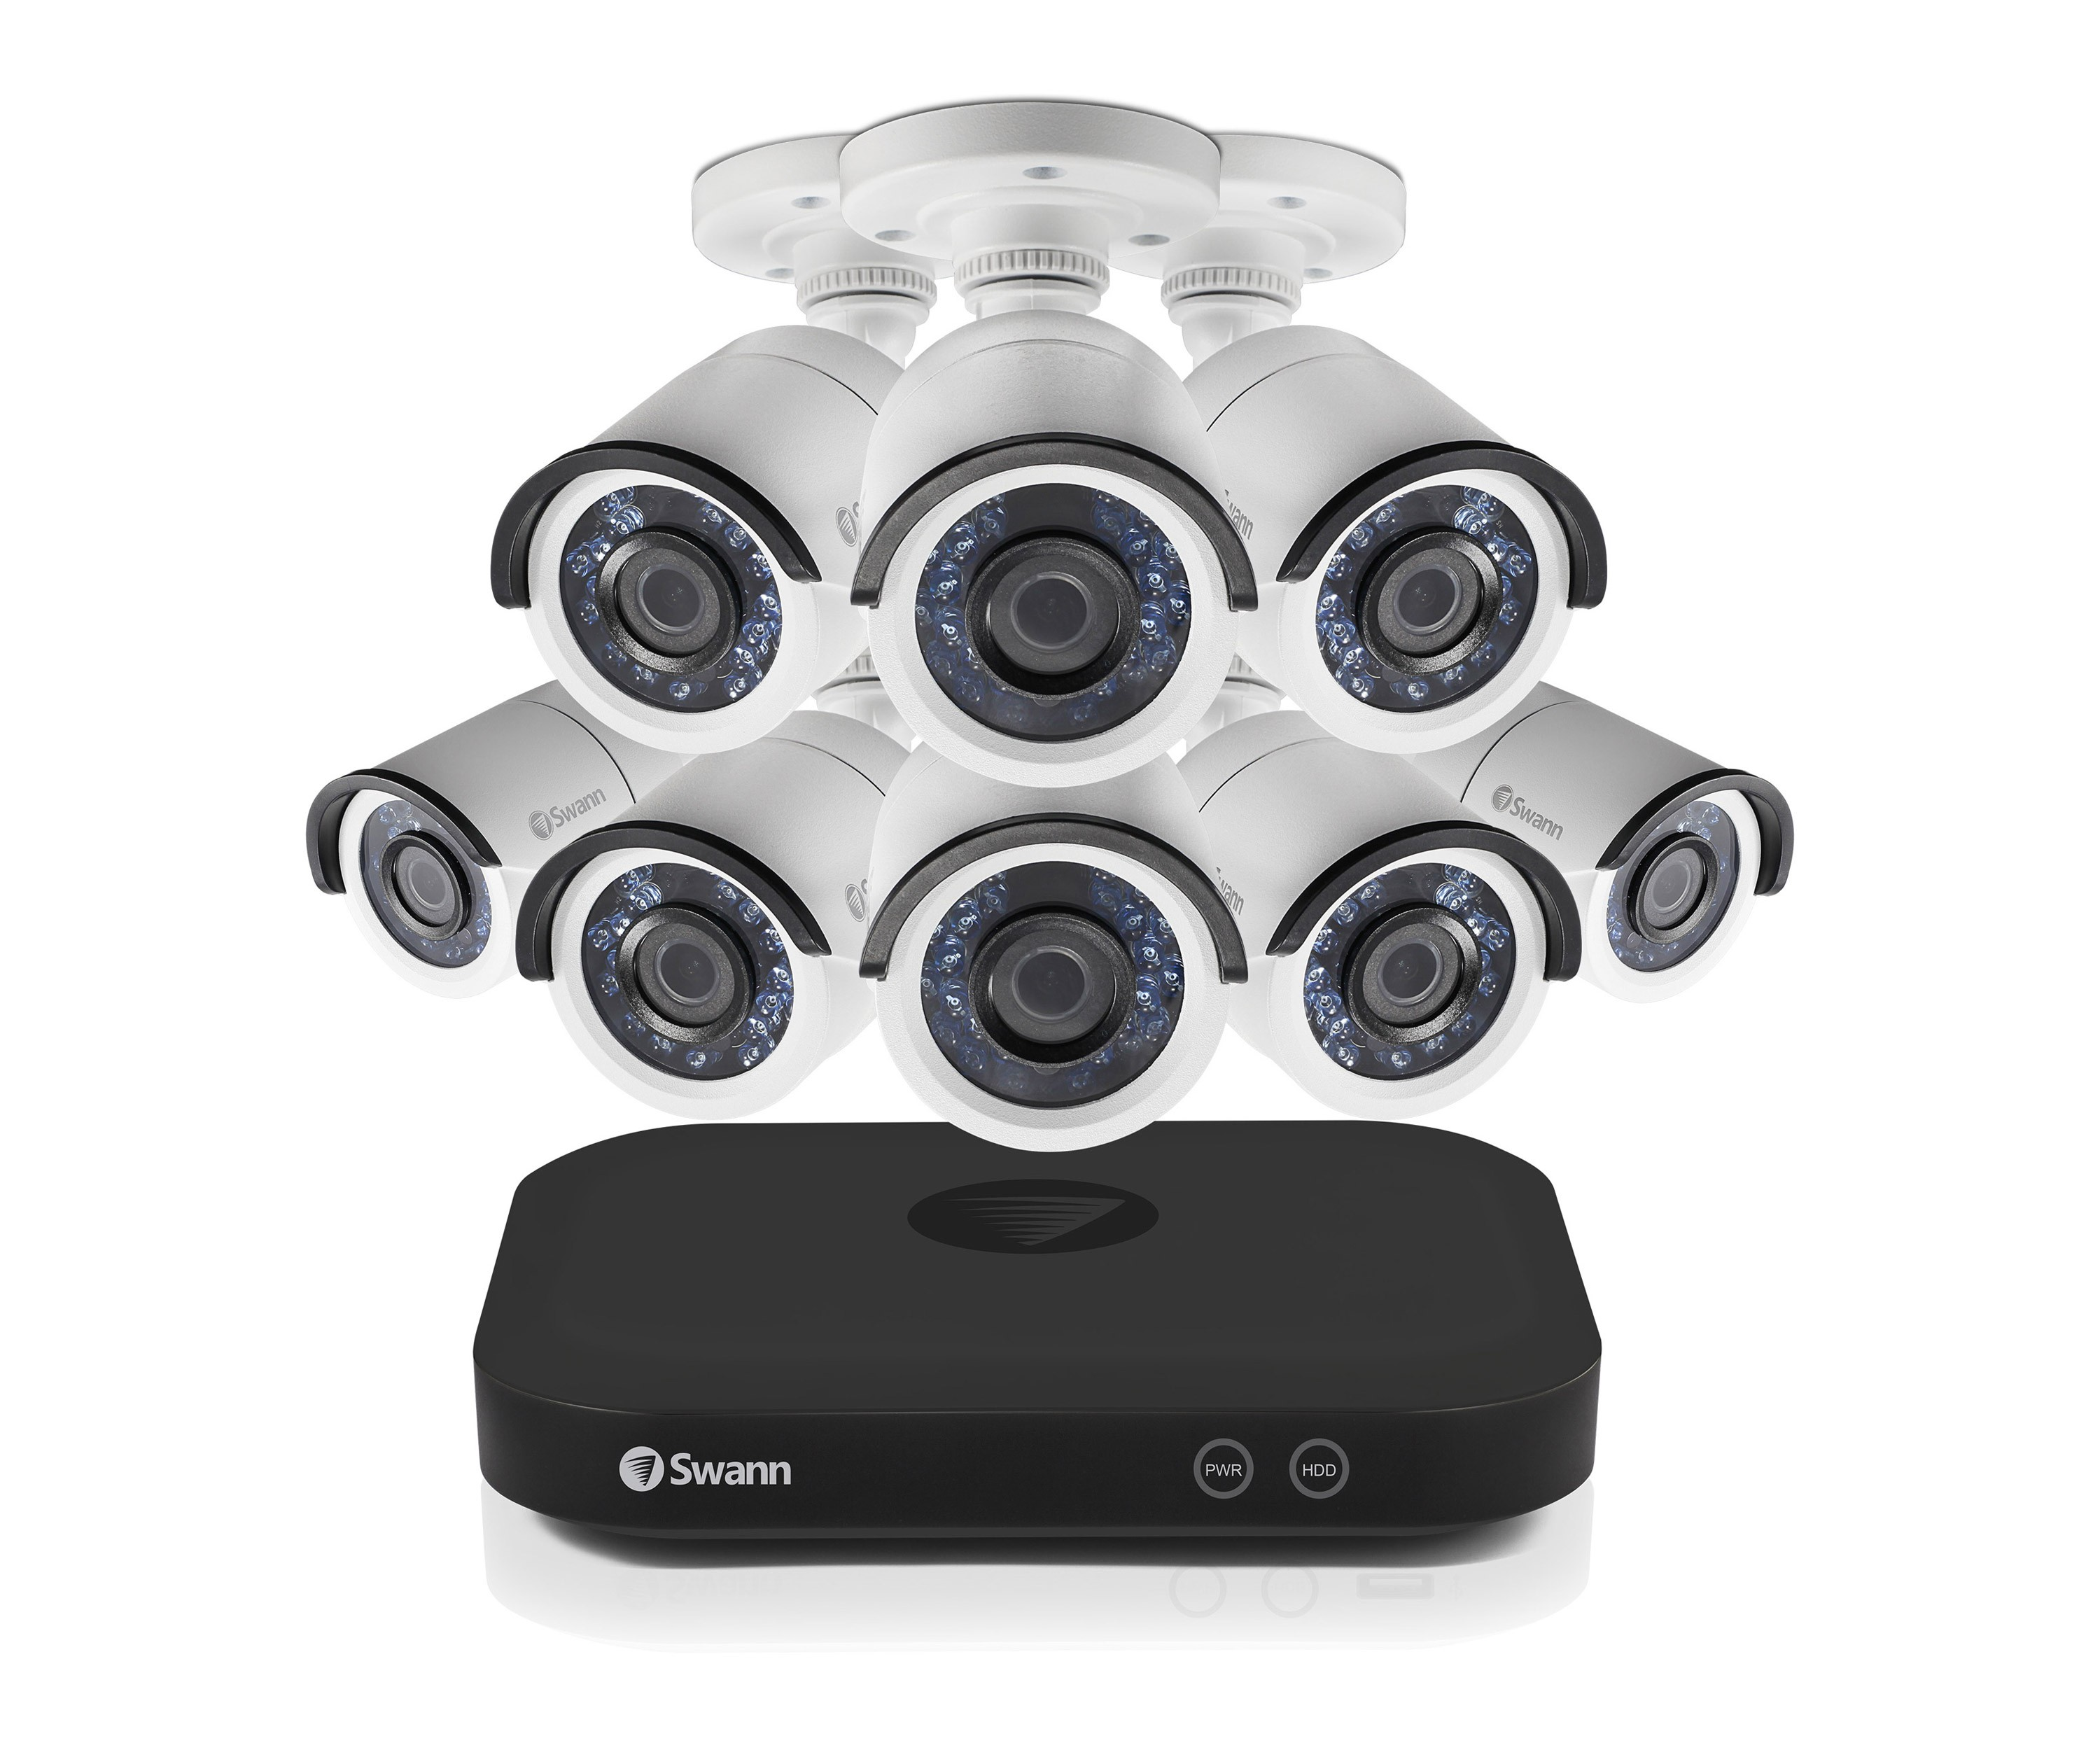 SWDVK-8HD5MP8 Swann 8 Channel Security System: 5MP Super HD DVR with 2TB HDD & 8 x 5MP Bullet Cameras -